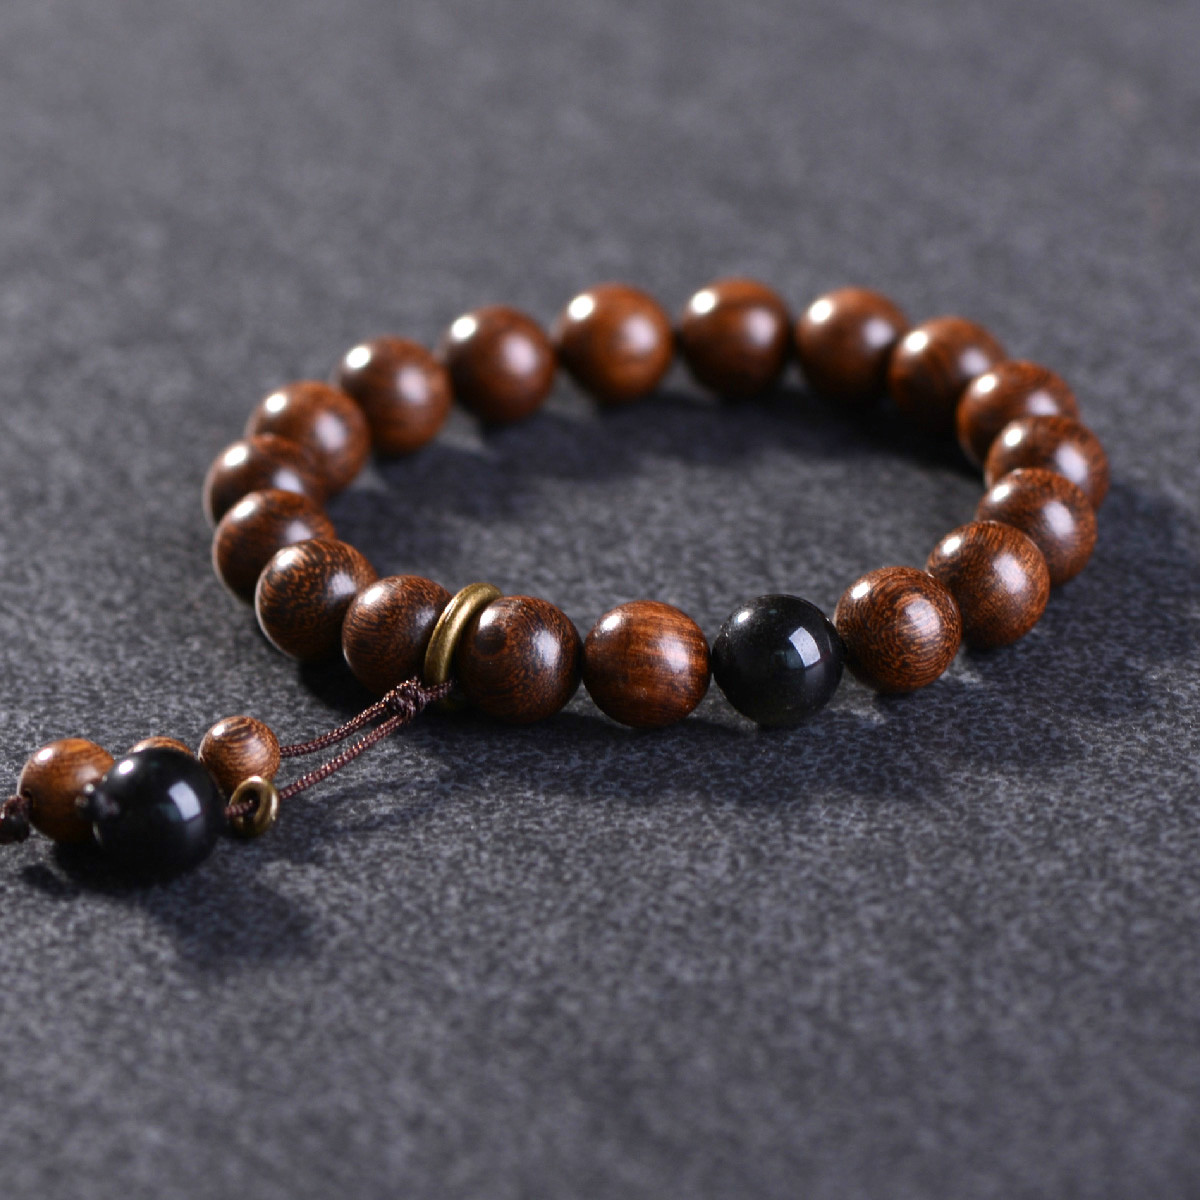 Wooden Beads Bracelet for Men Women 8mm Natural Buddha Wood Bracelets Beaded Strand Wrist Male Bracelet